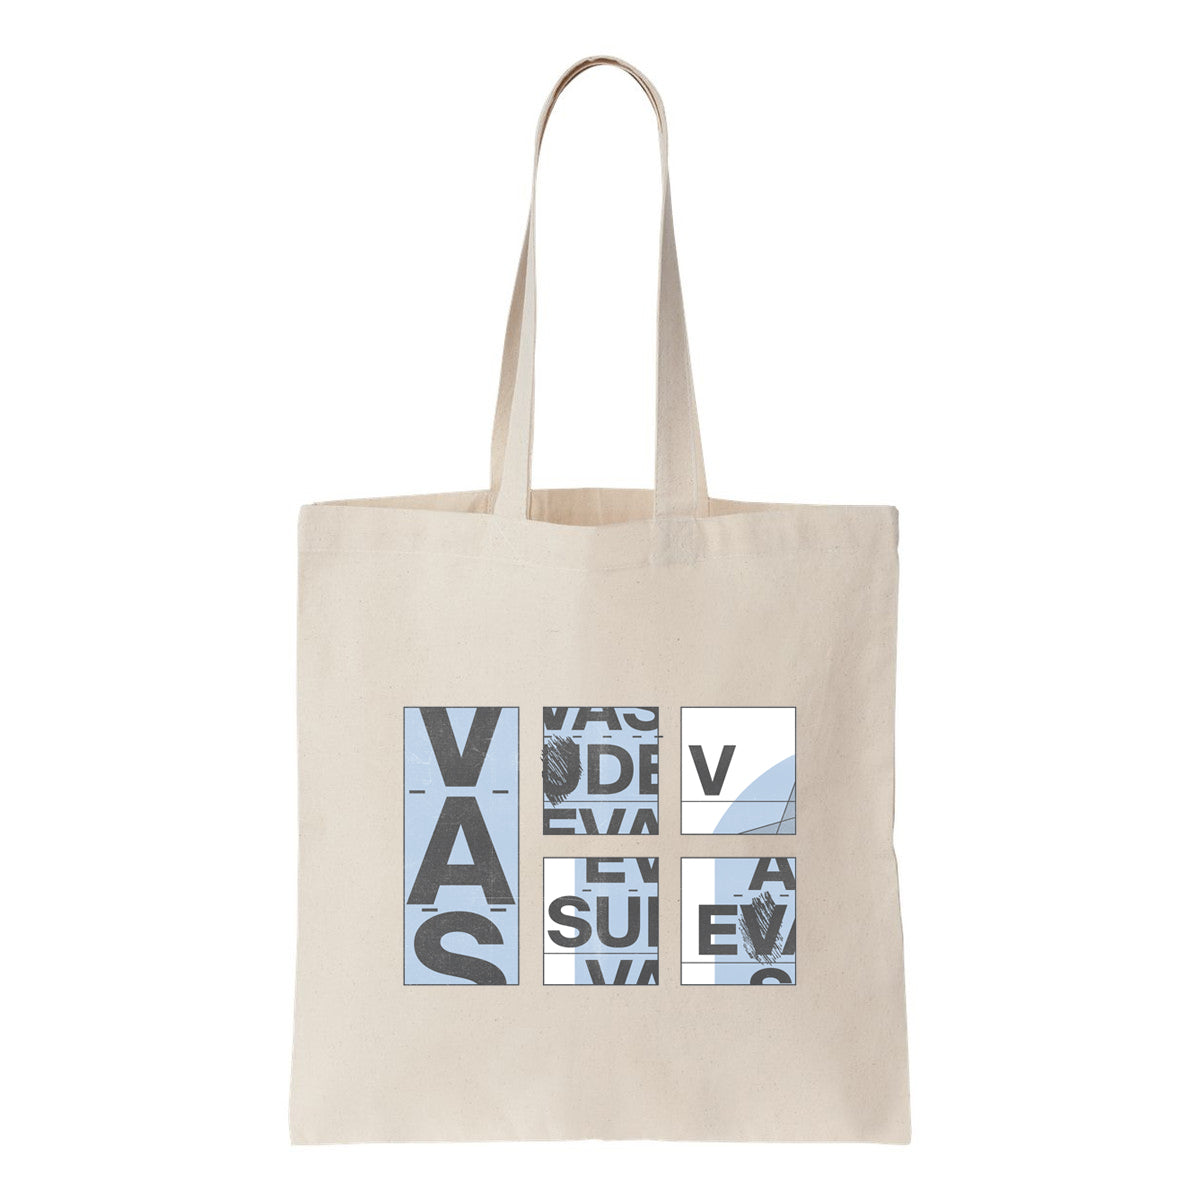 Vasudeva - Abstract Tote Bag